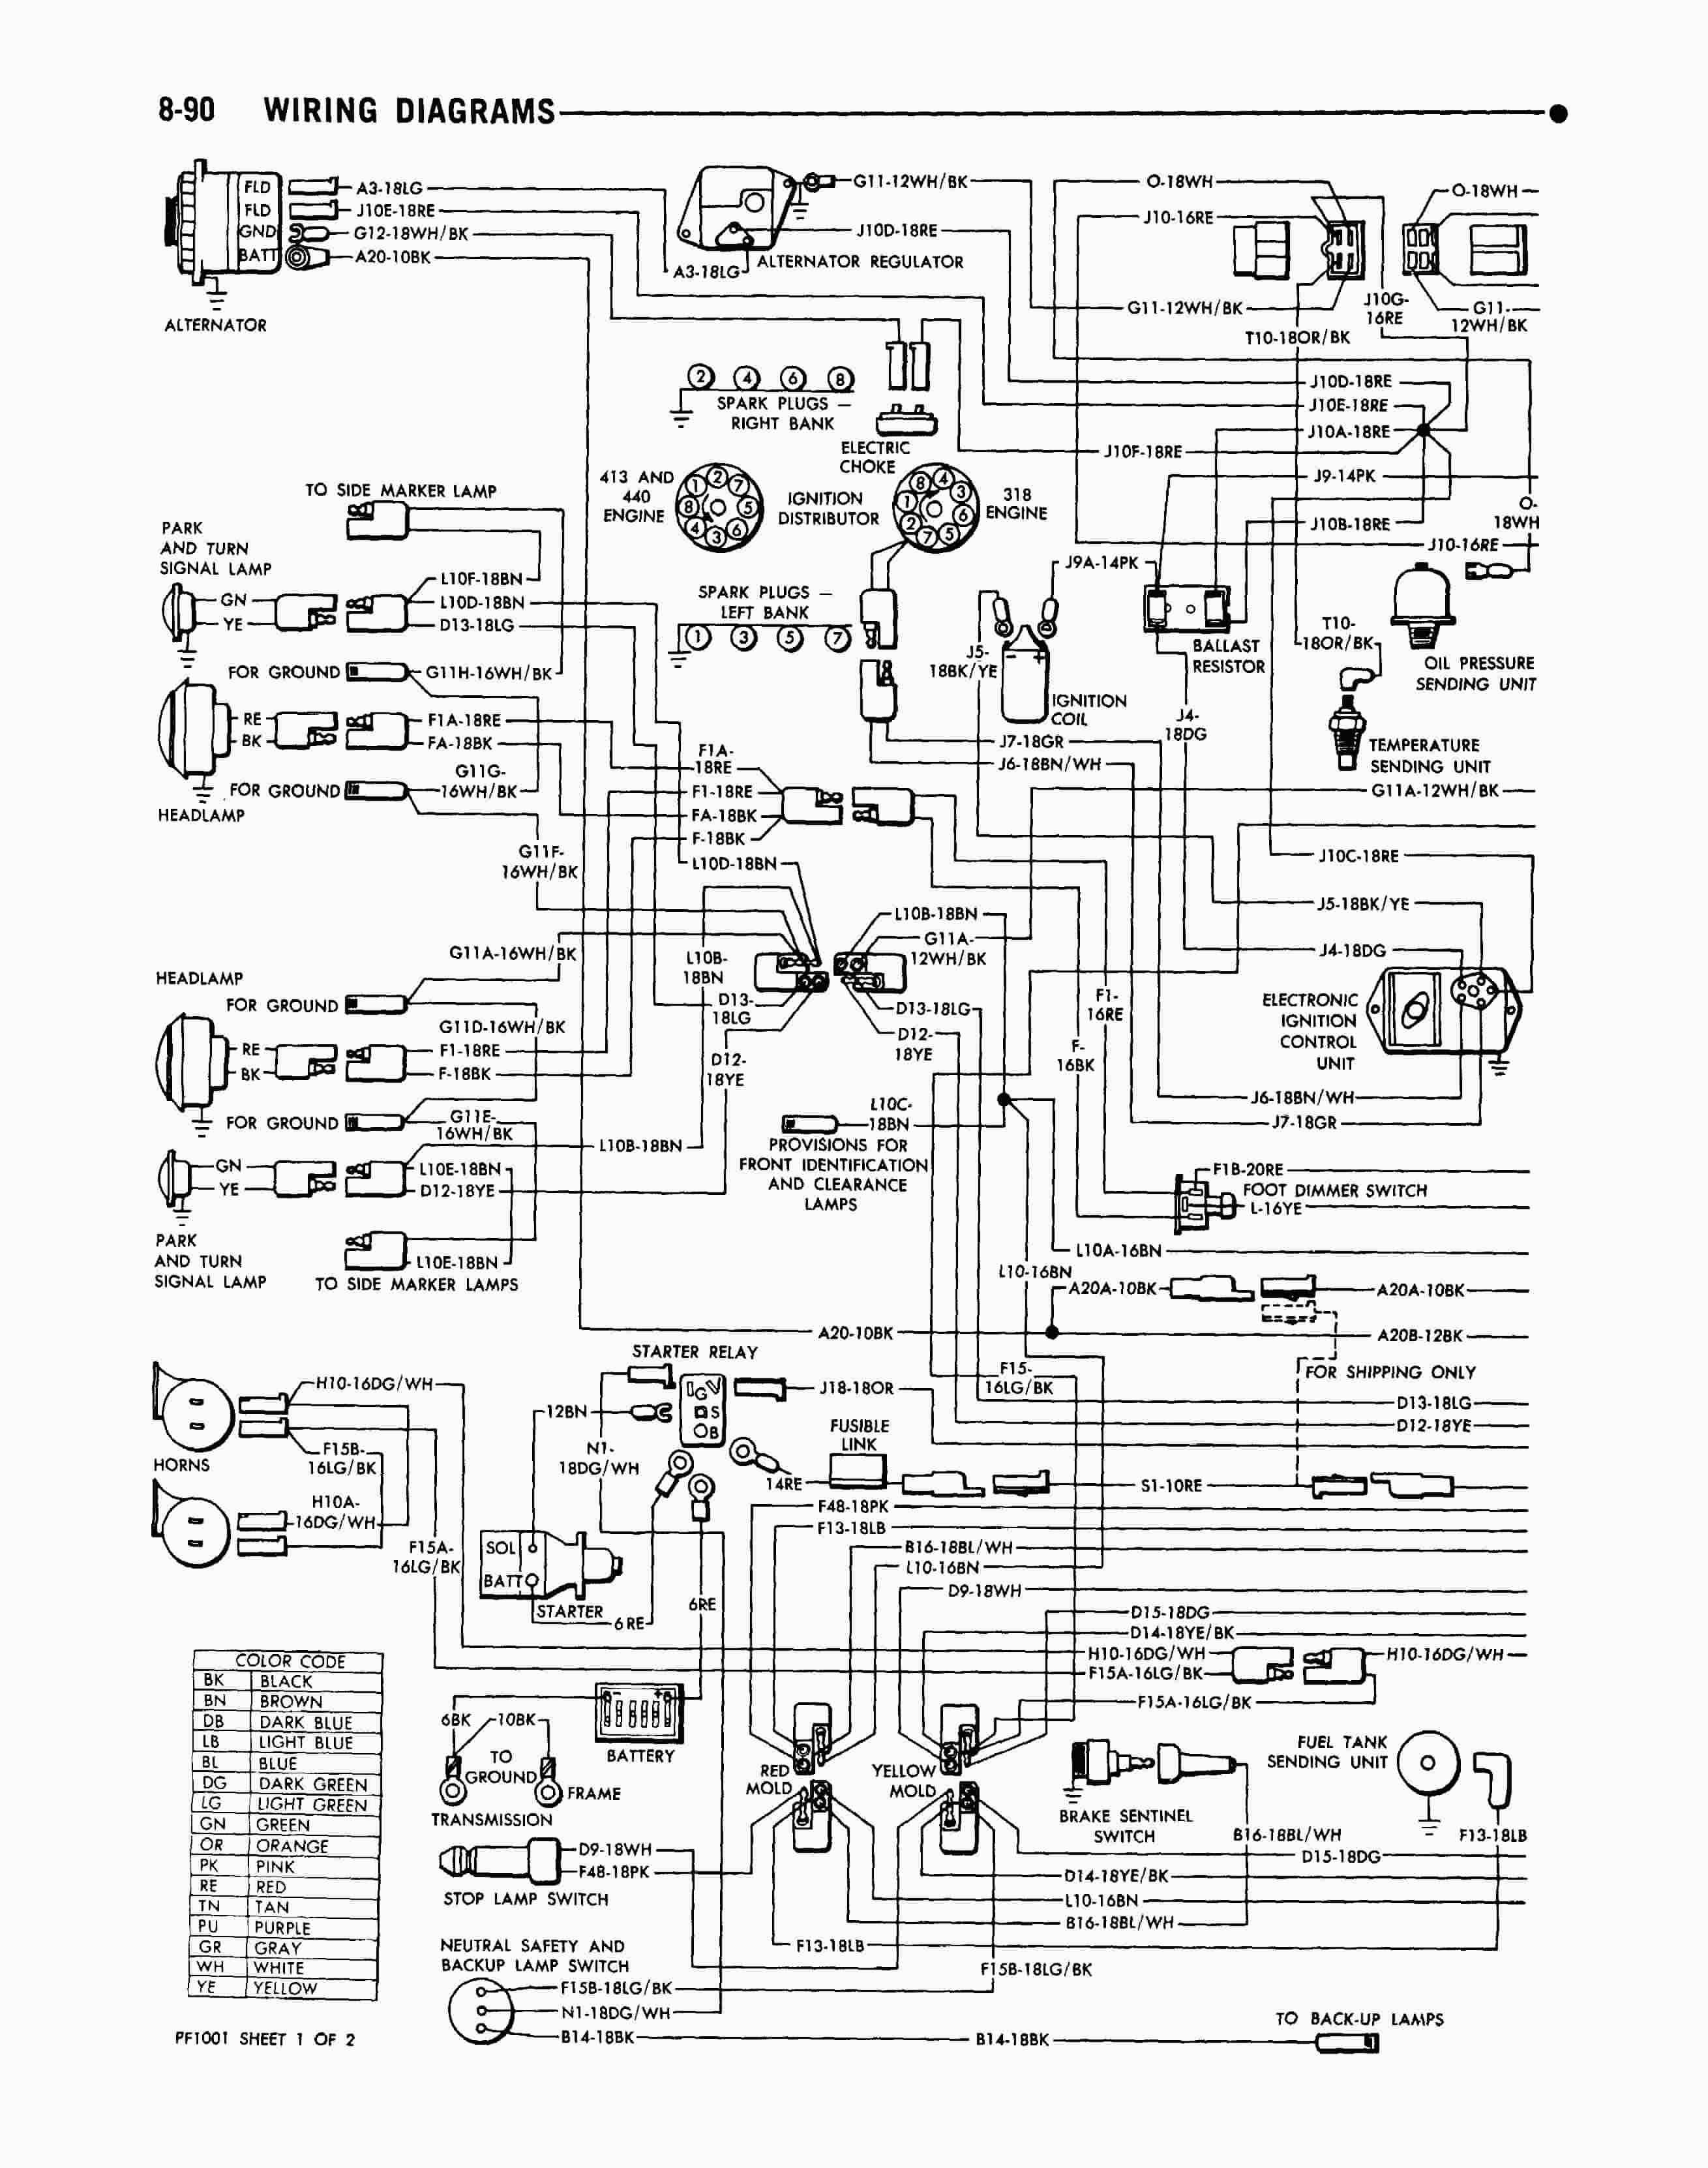 DIAGRAM] 2010 Keystone Cougar Wiring Diagram FULL Version HD Quality Wiring  Diagram - MATE-DIAGRAM.RADD.FRDiagram Database - Radd